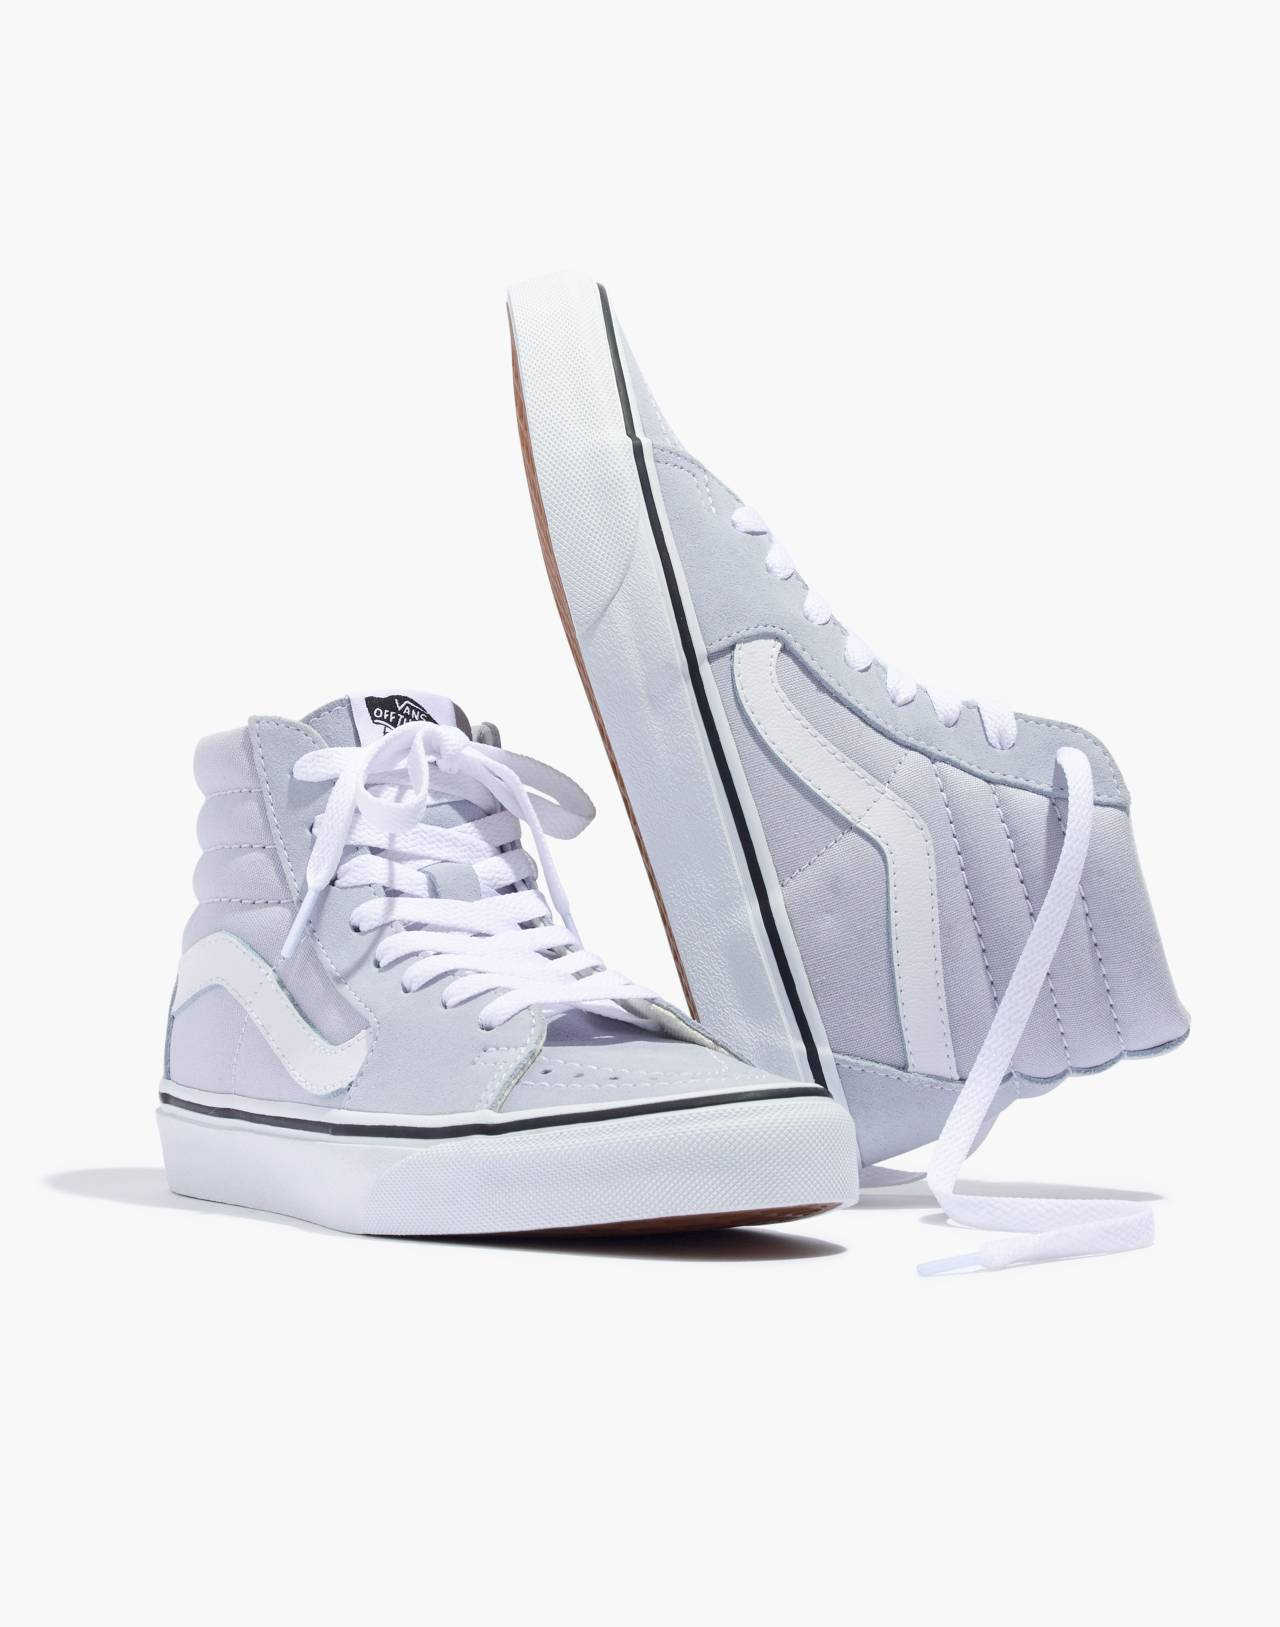 Vans® Sk8-Hi High-Top Sneakers in Canvas and Suede in gray dawn/true white image 1